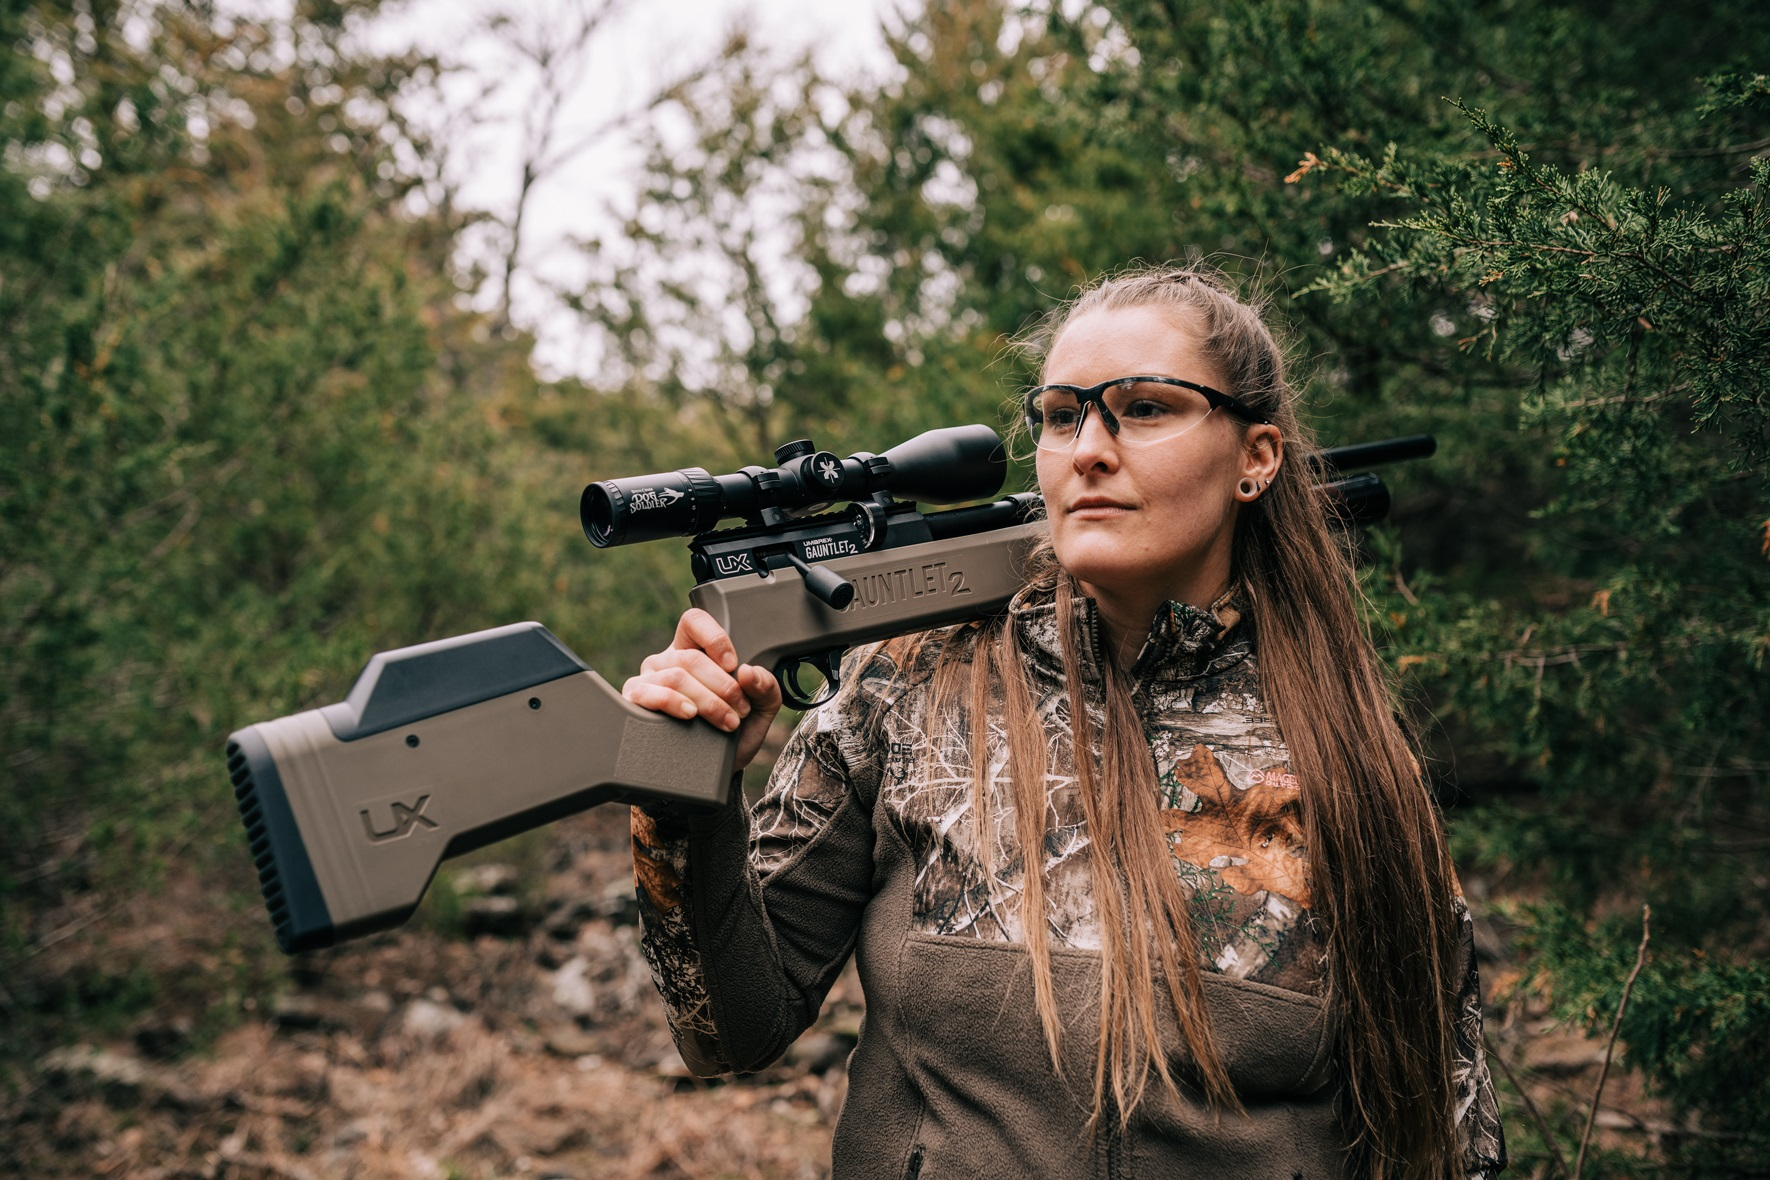 NEW Gauntlet 2: Pre-Charged, Pneumatic Air Rifle from Umarex